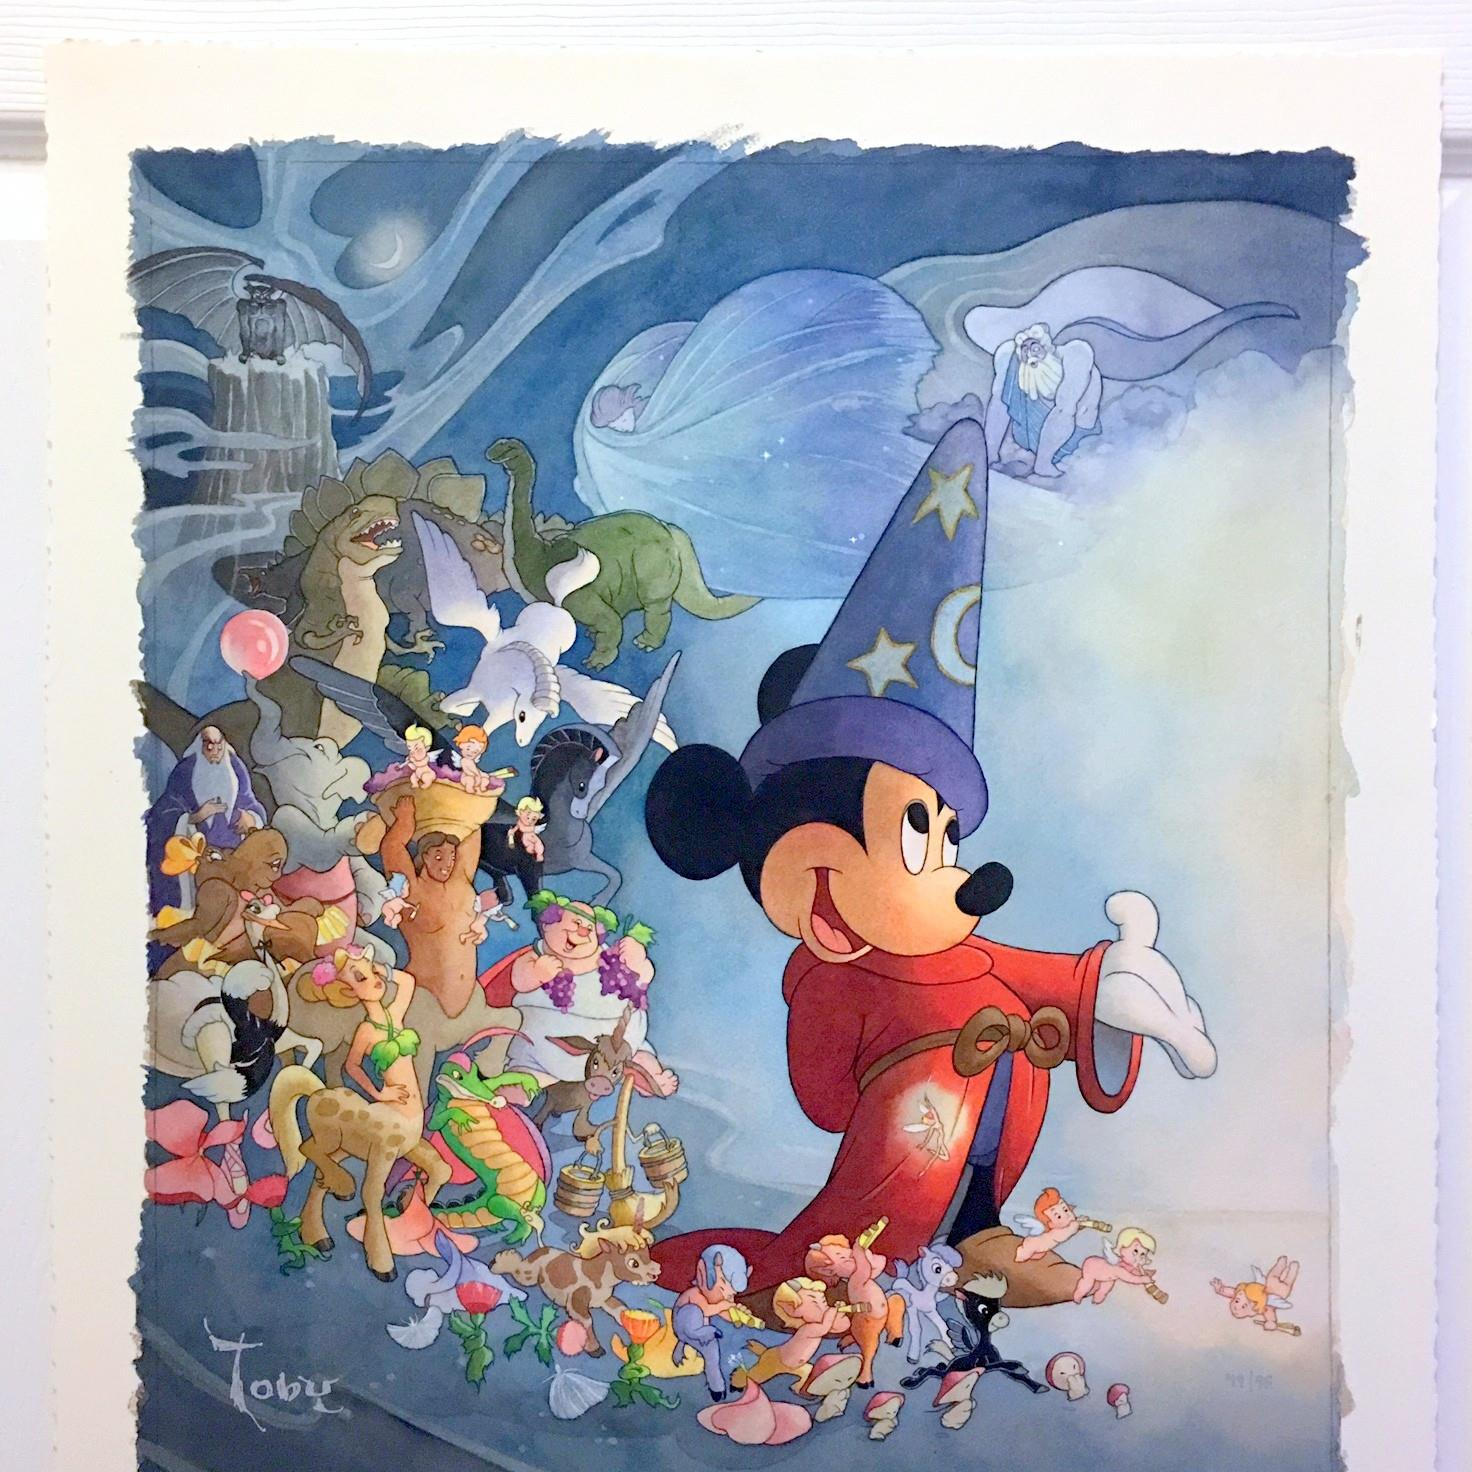 Toby Bluth Disney artist, Fantasia movie, Disney Art ,Sold Out Edition, Rare Disney art, Mickey Mouse, Fantasia characters,